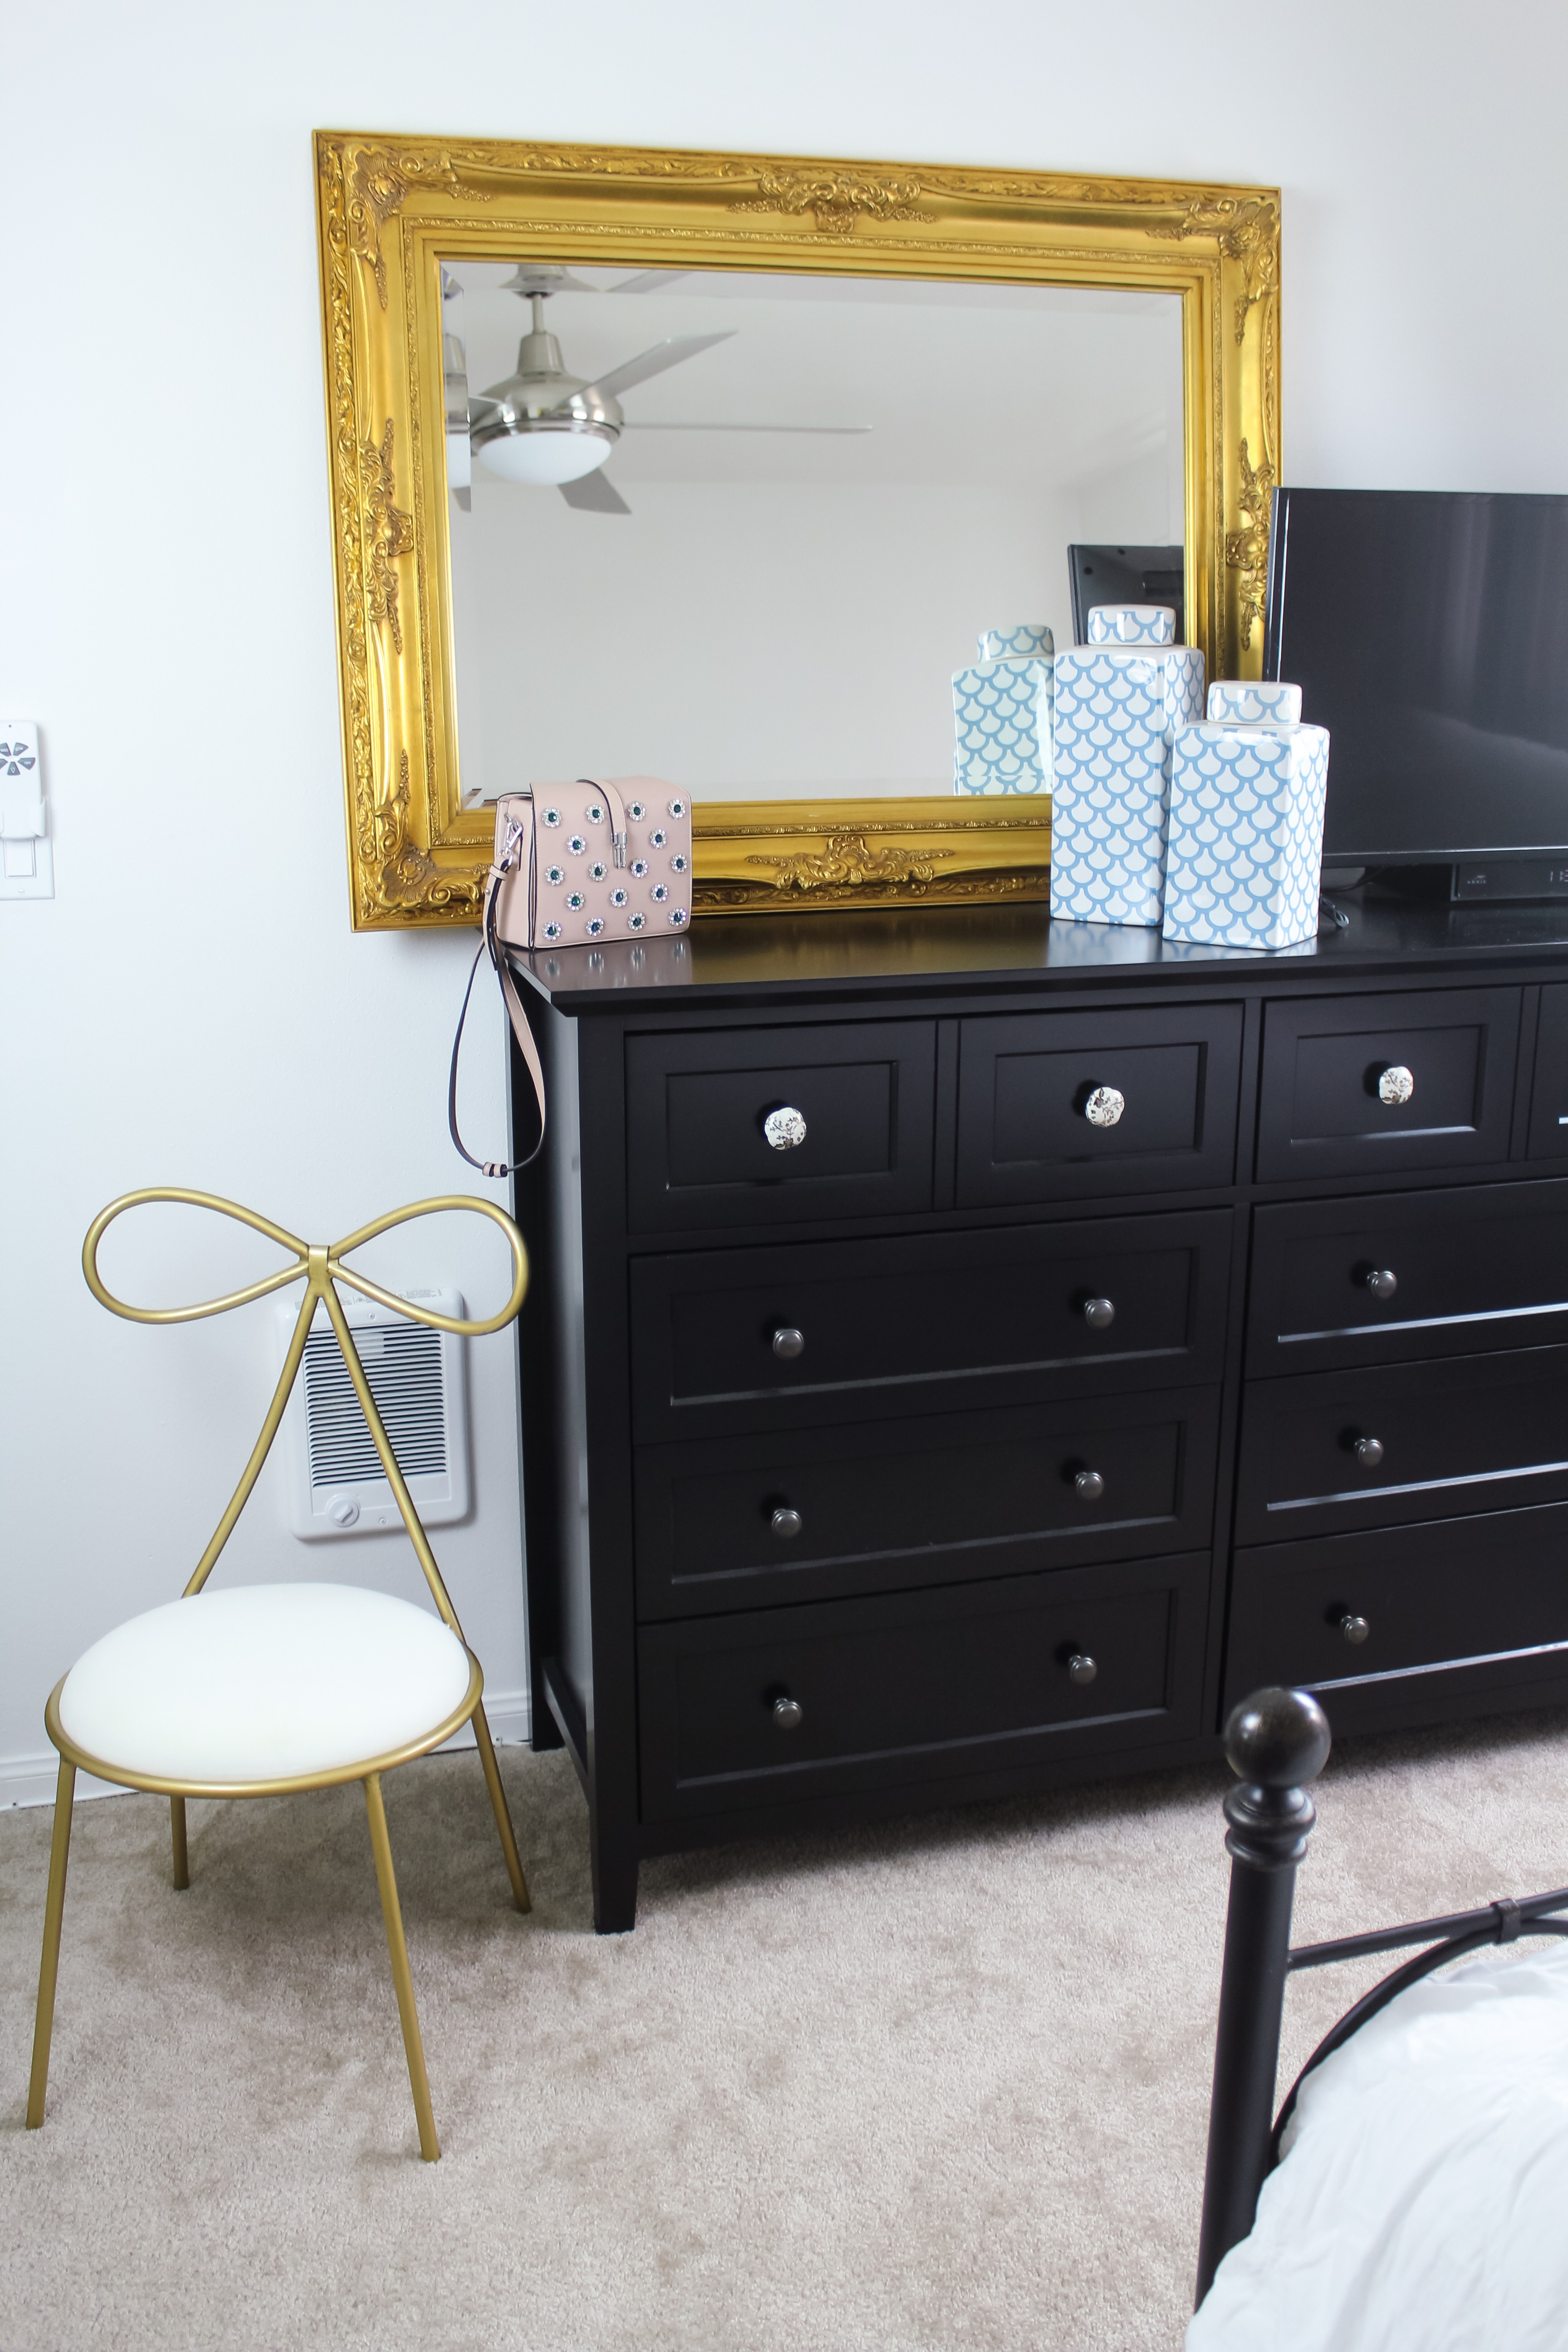 Accents of Gold, Turquoise, Rose and Decorative Knobs | Bedroom Oasis